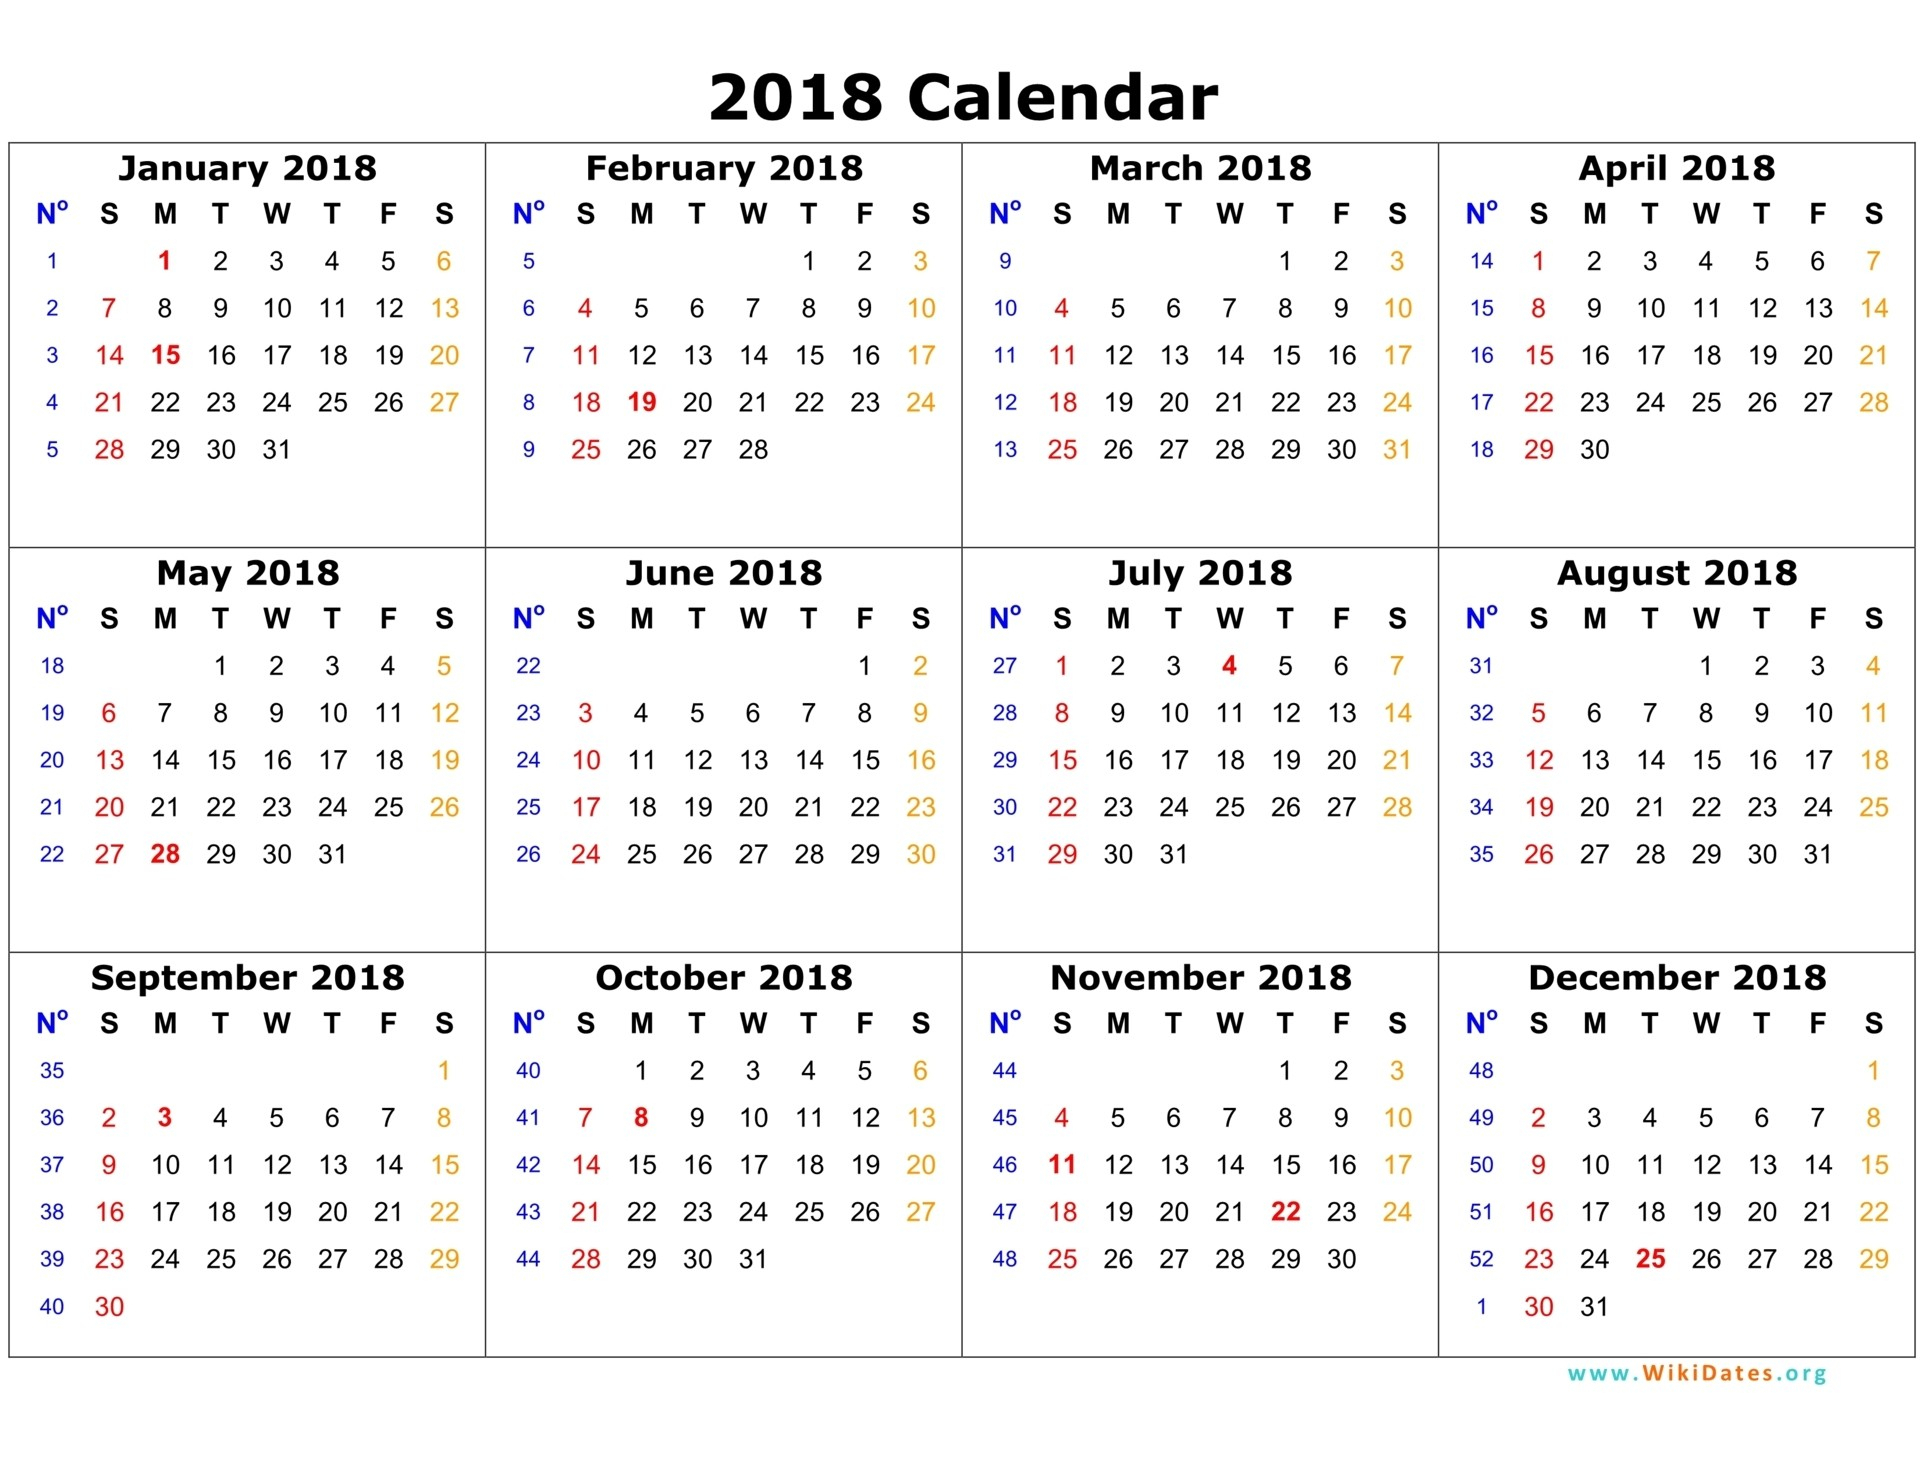 2018 Calendar Template 03 On 12 Month Calendar 2018 Template - Free